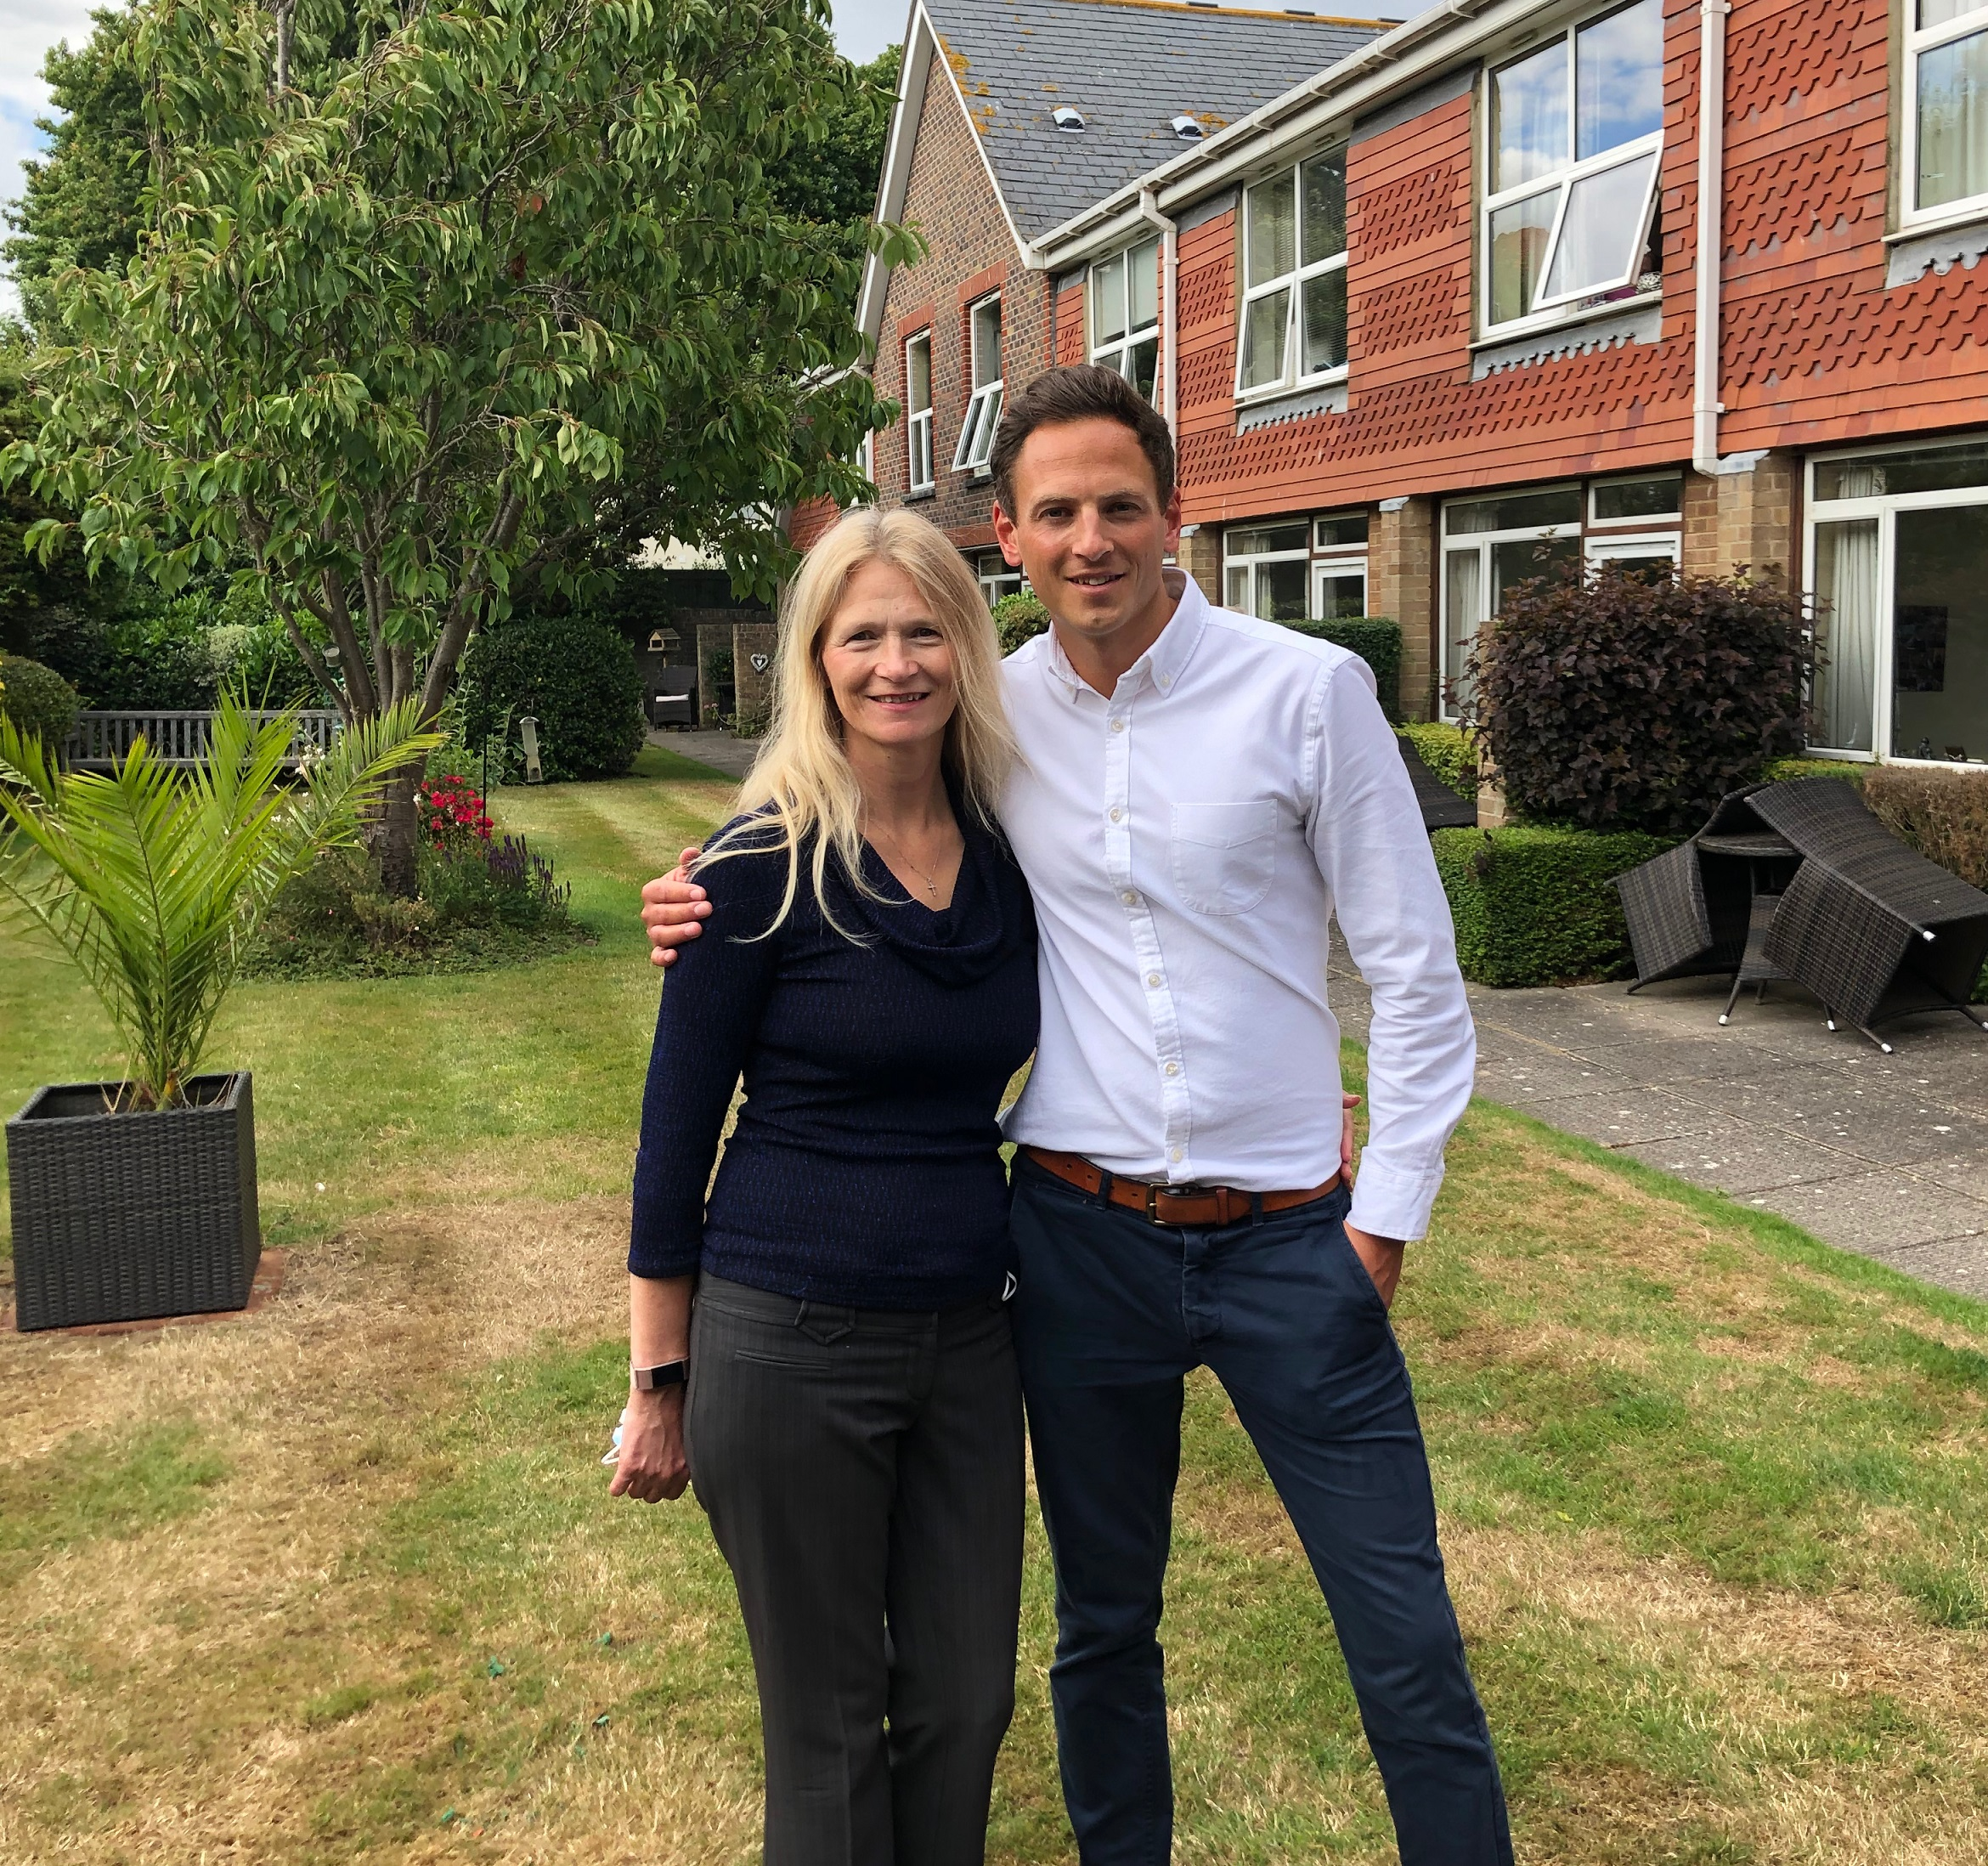 Family-run business acquires West Sussex care home following £2.1m funding package